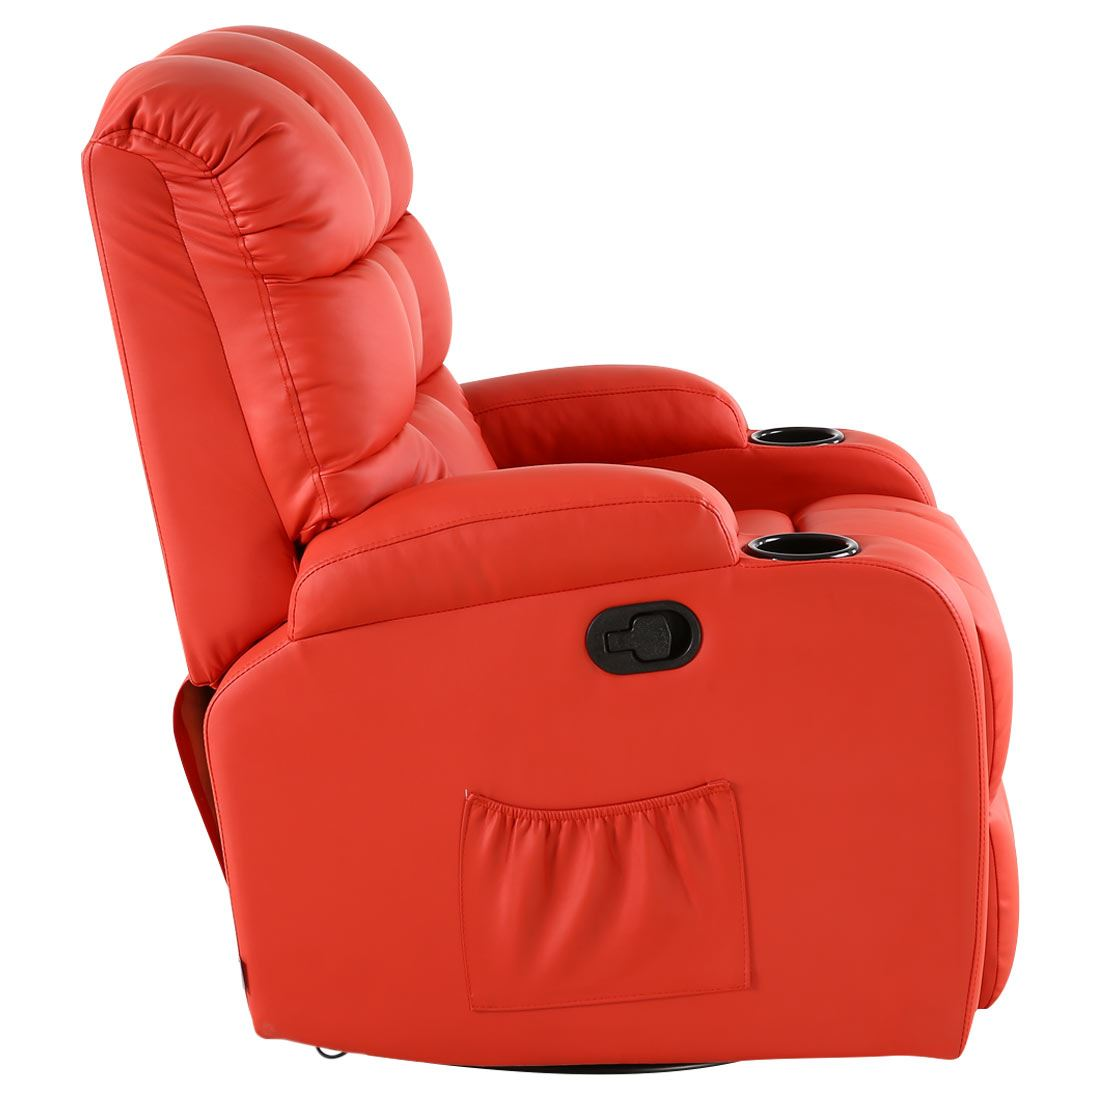 Red Leather Reclining Chair regal red leather recliner chair rocking massage swivel heated